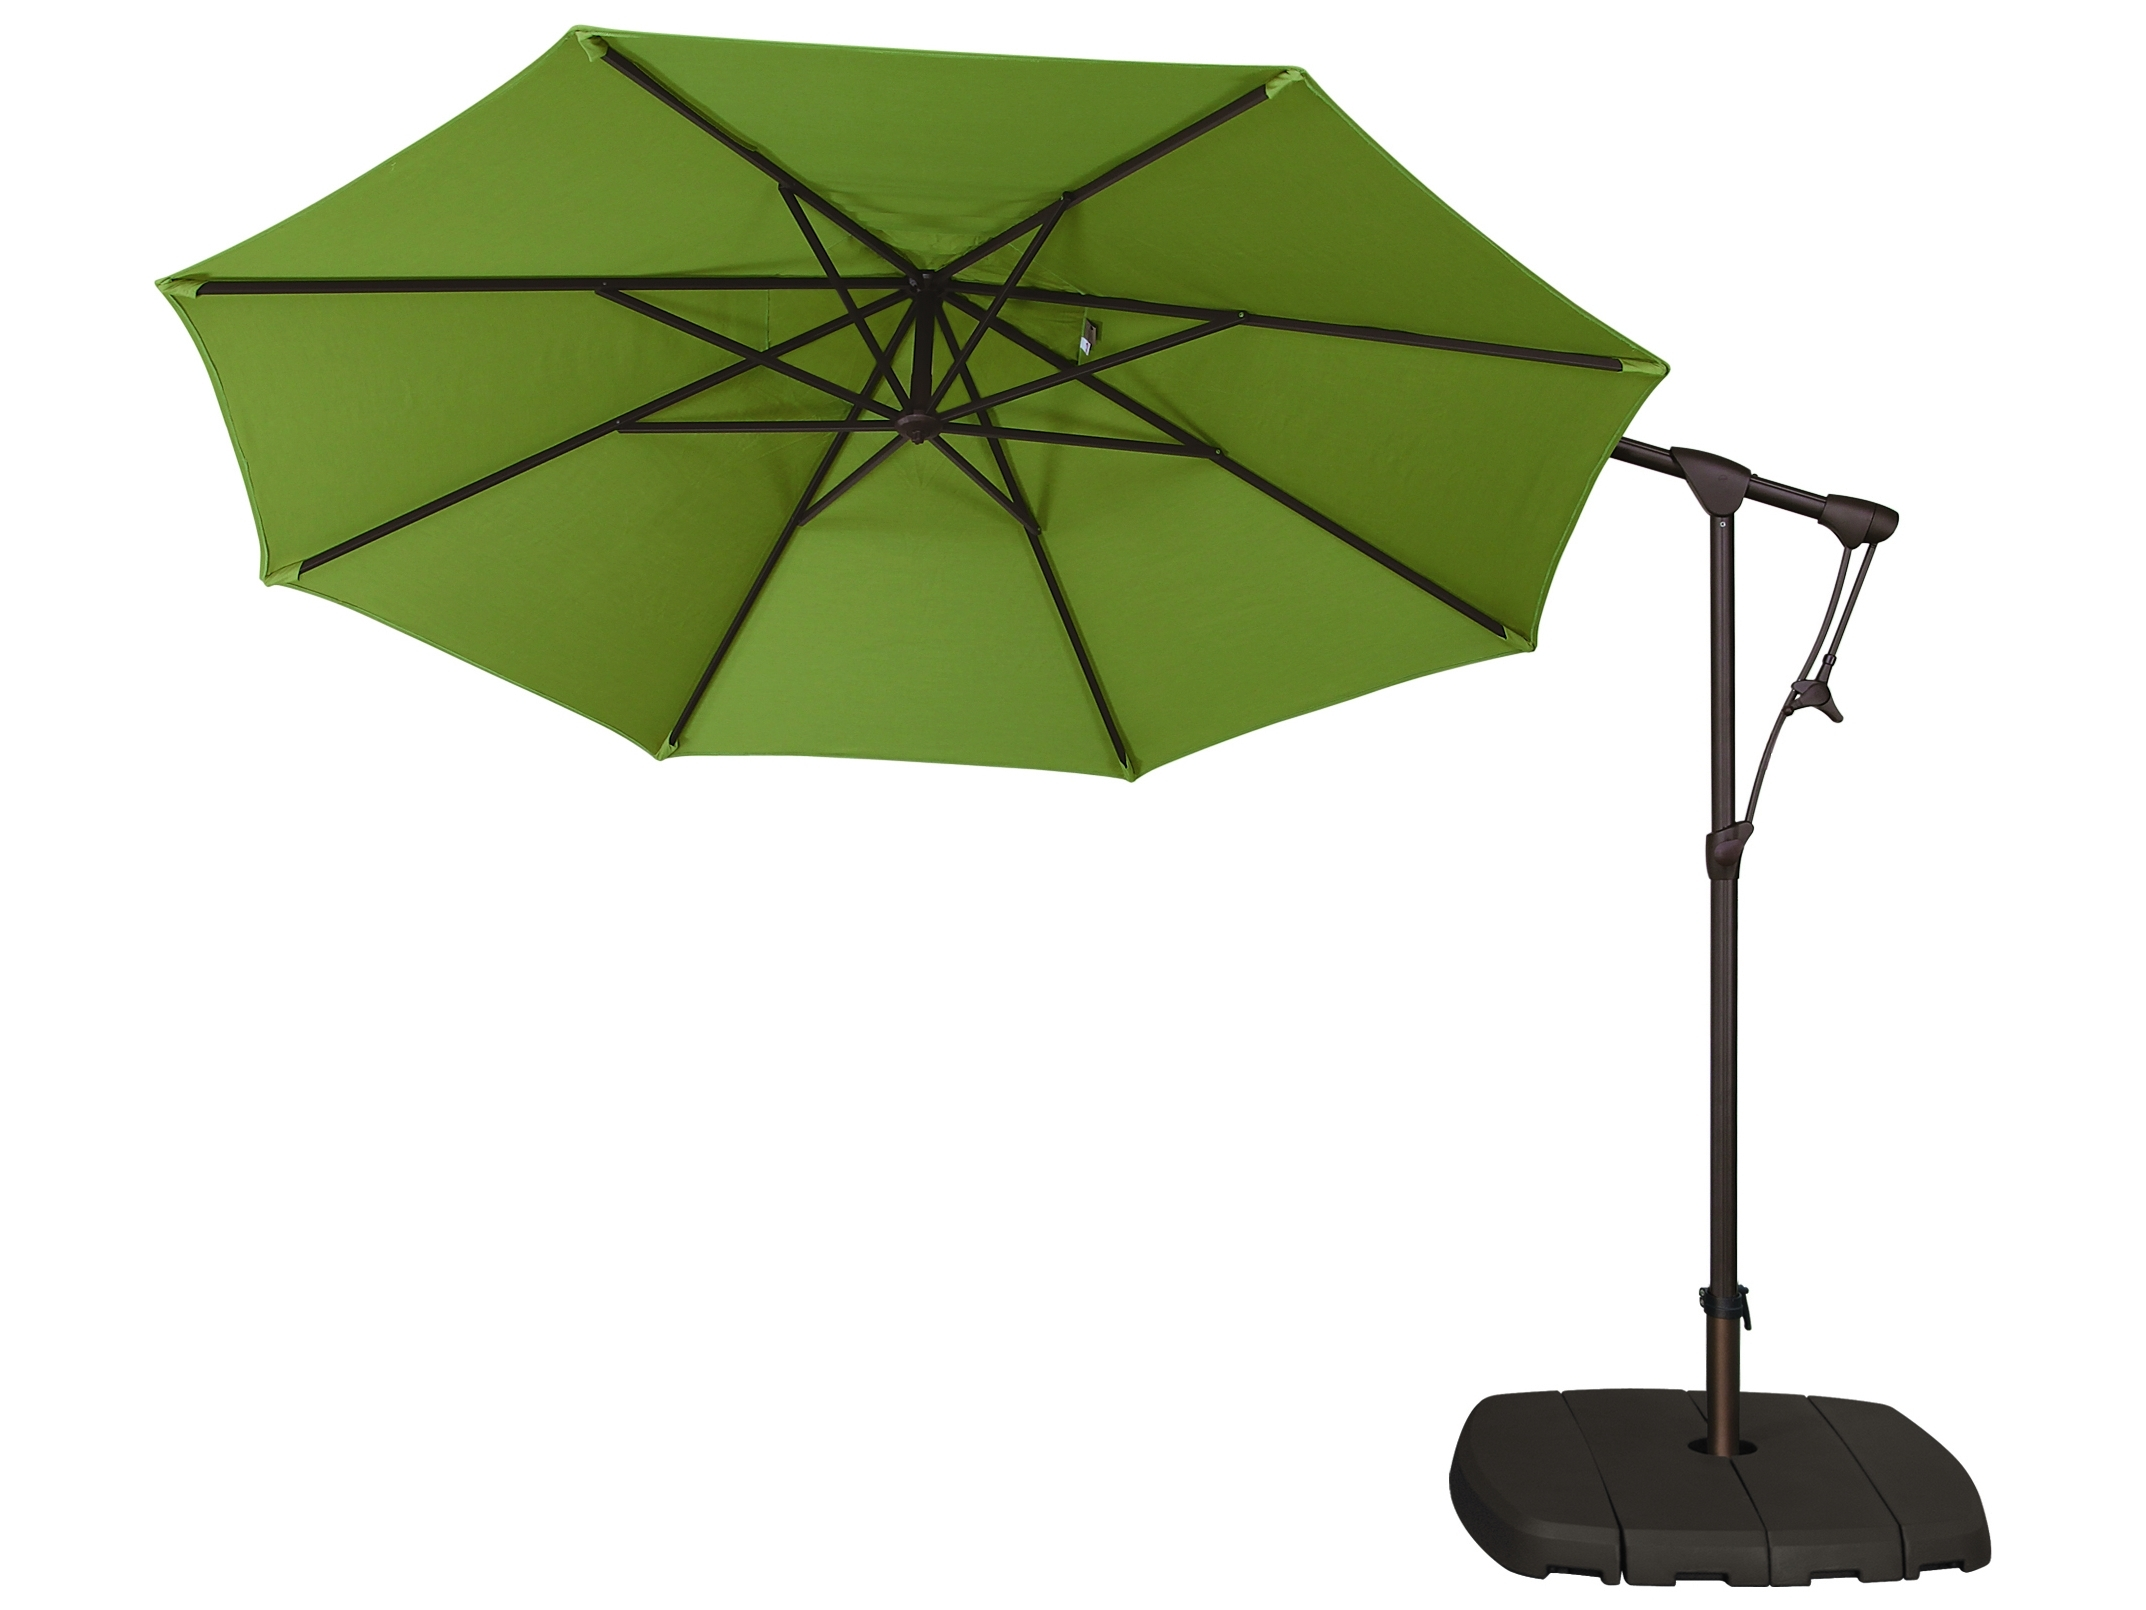 Treasure Garden Patio Umbrellas Pertaining To 2019 Green Patio Umbrellas (View 19 of 20)